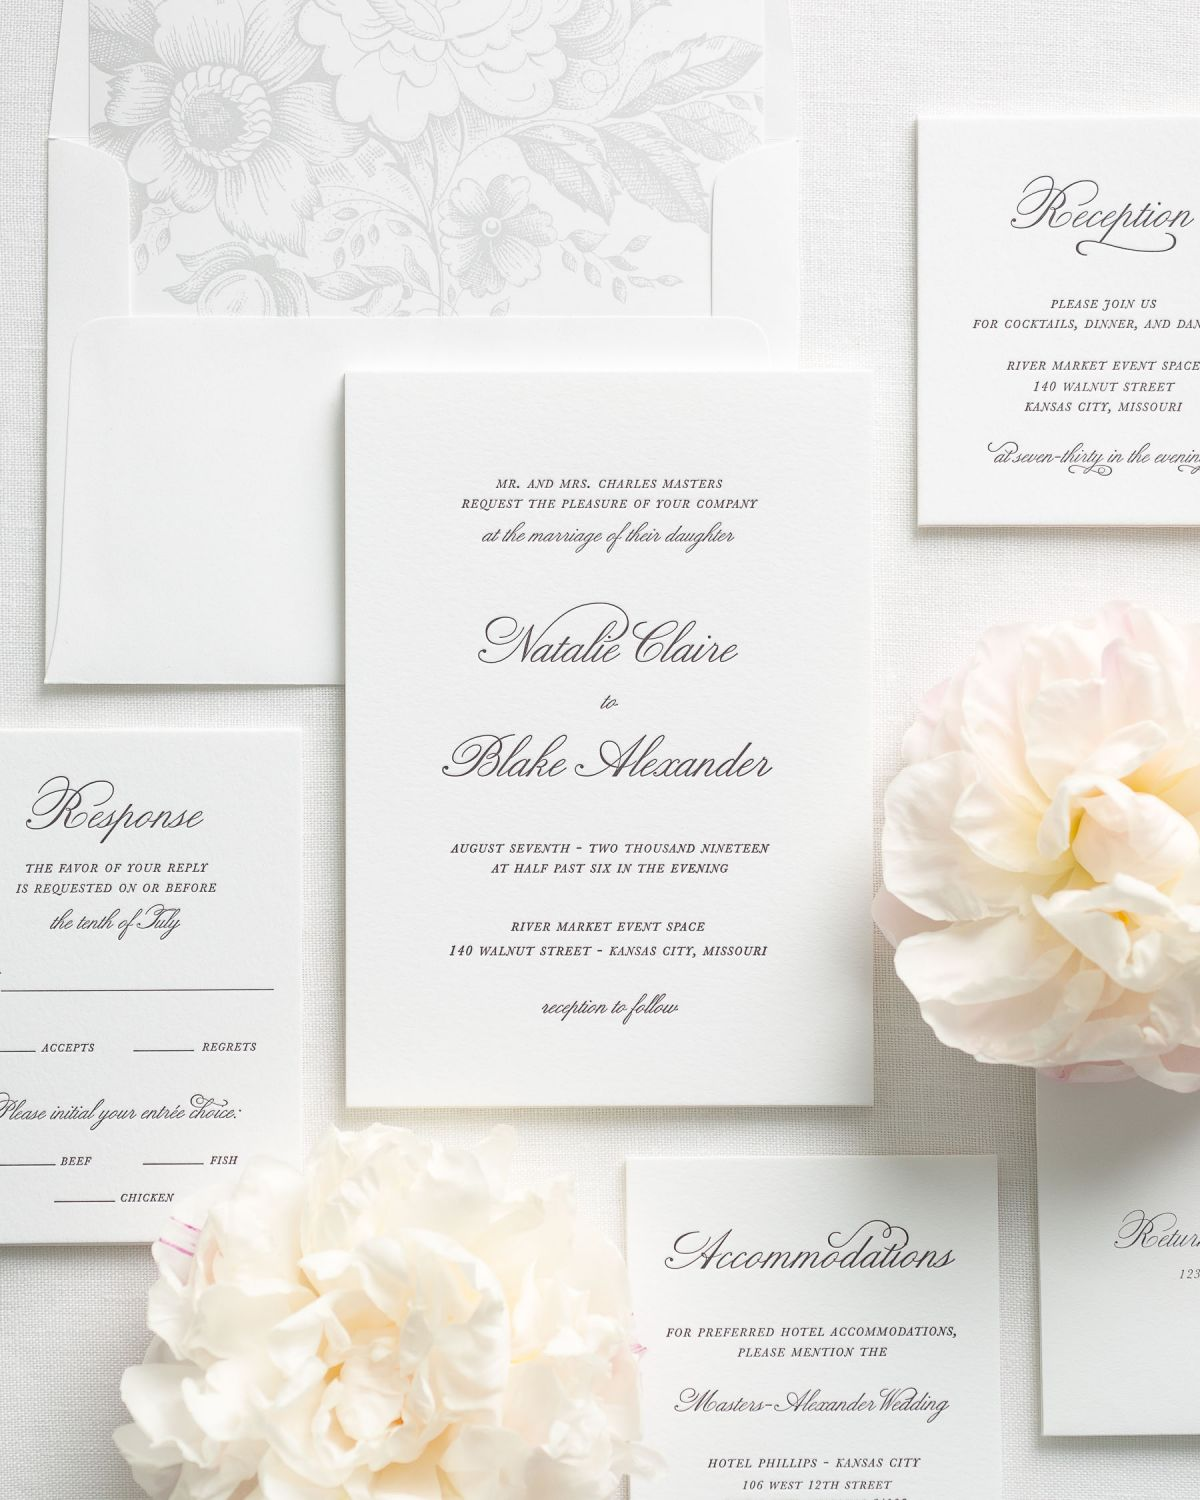 Letterpress Wedding Invitation Package Deal